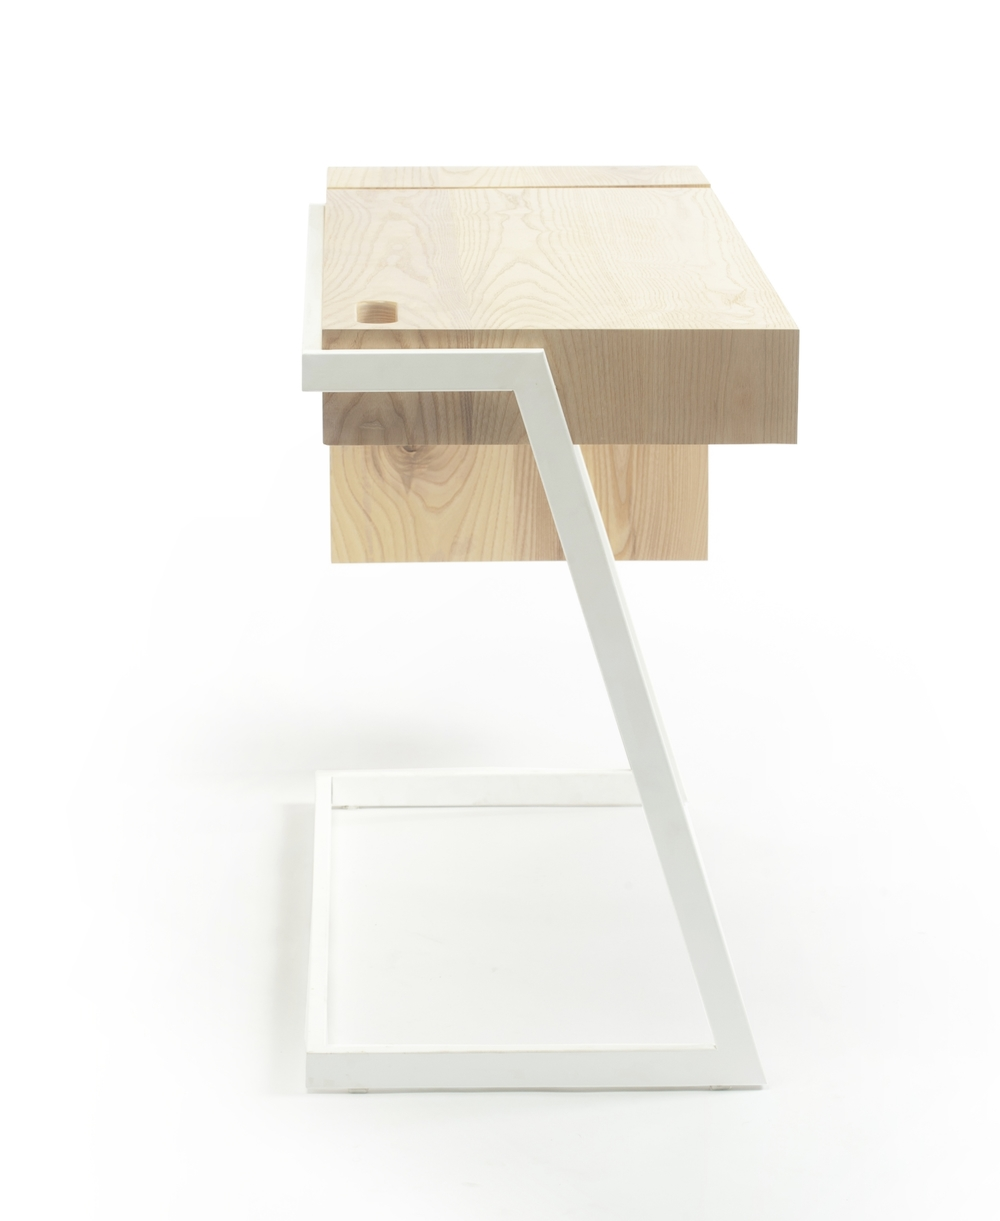 { 			The Cantilever Desk}